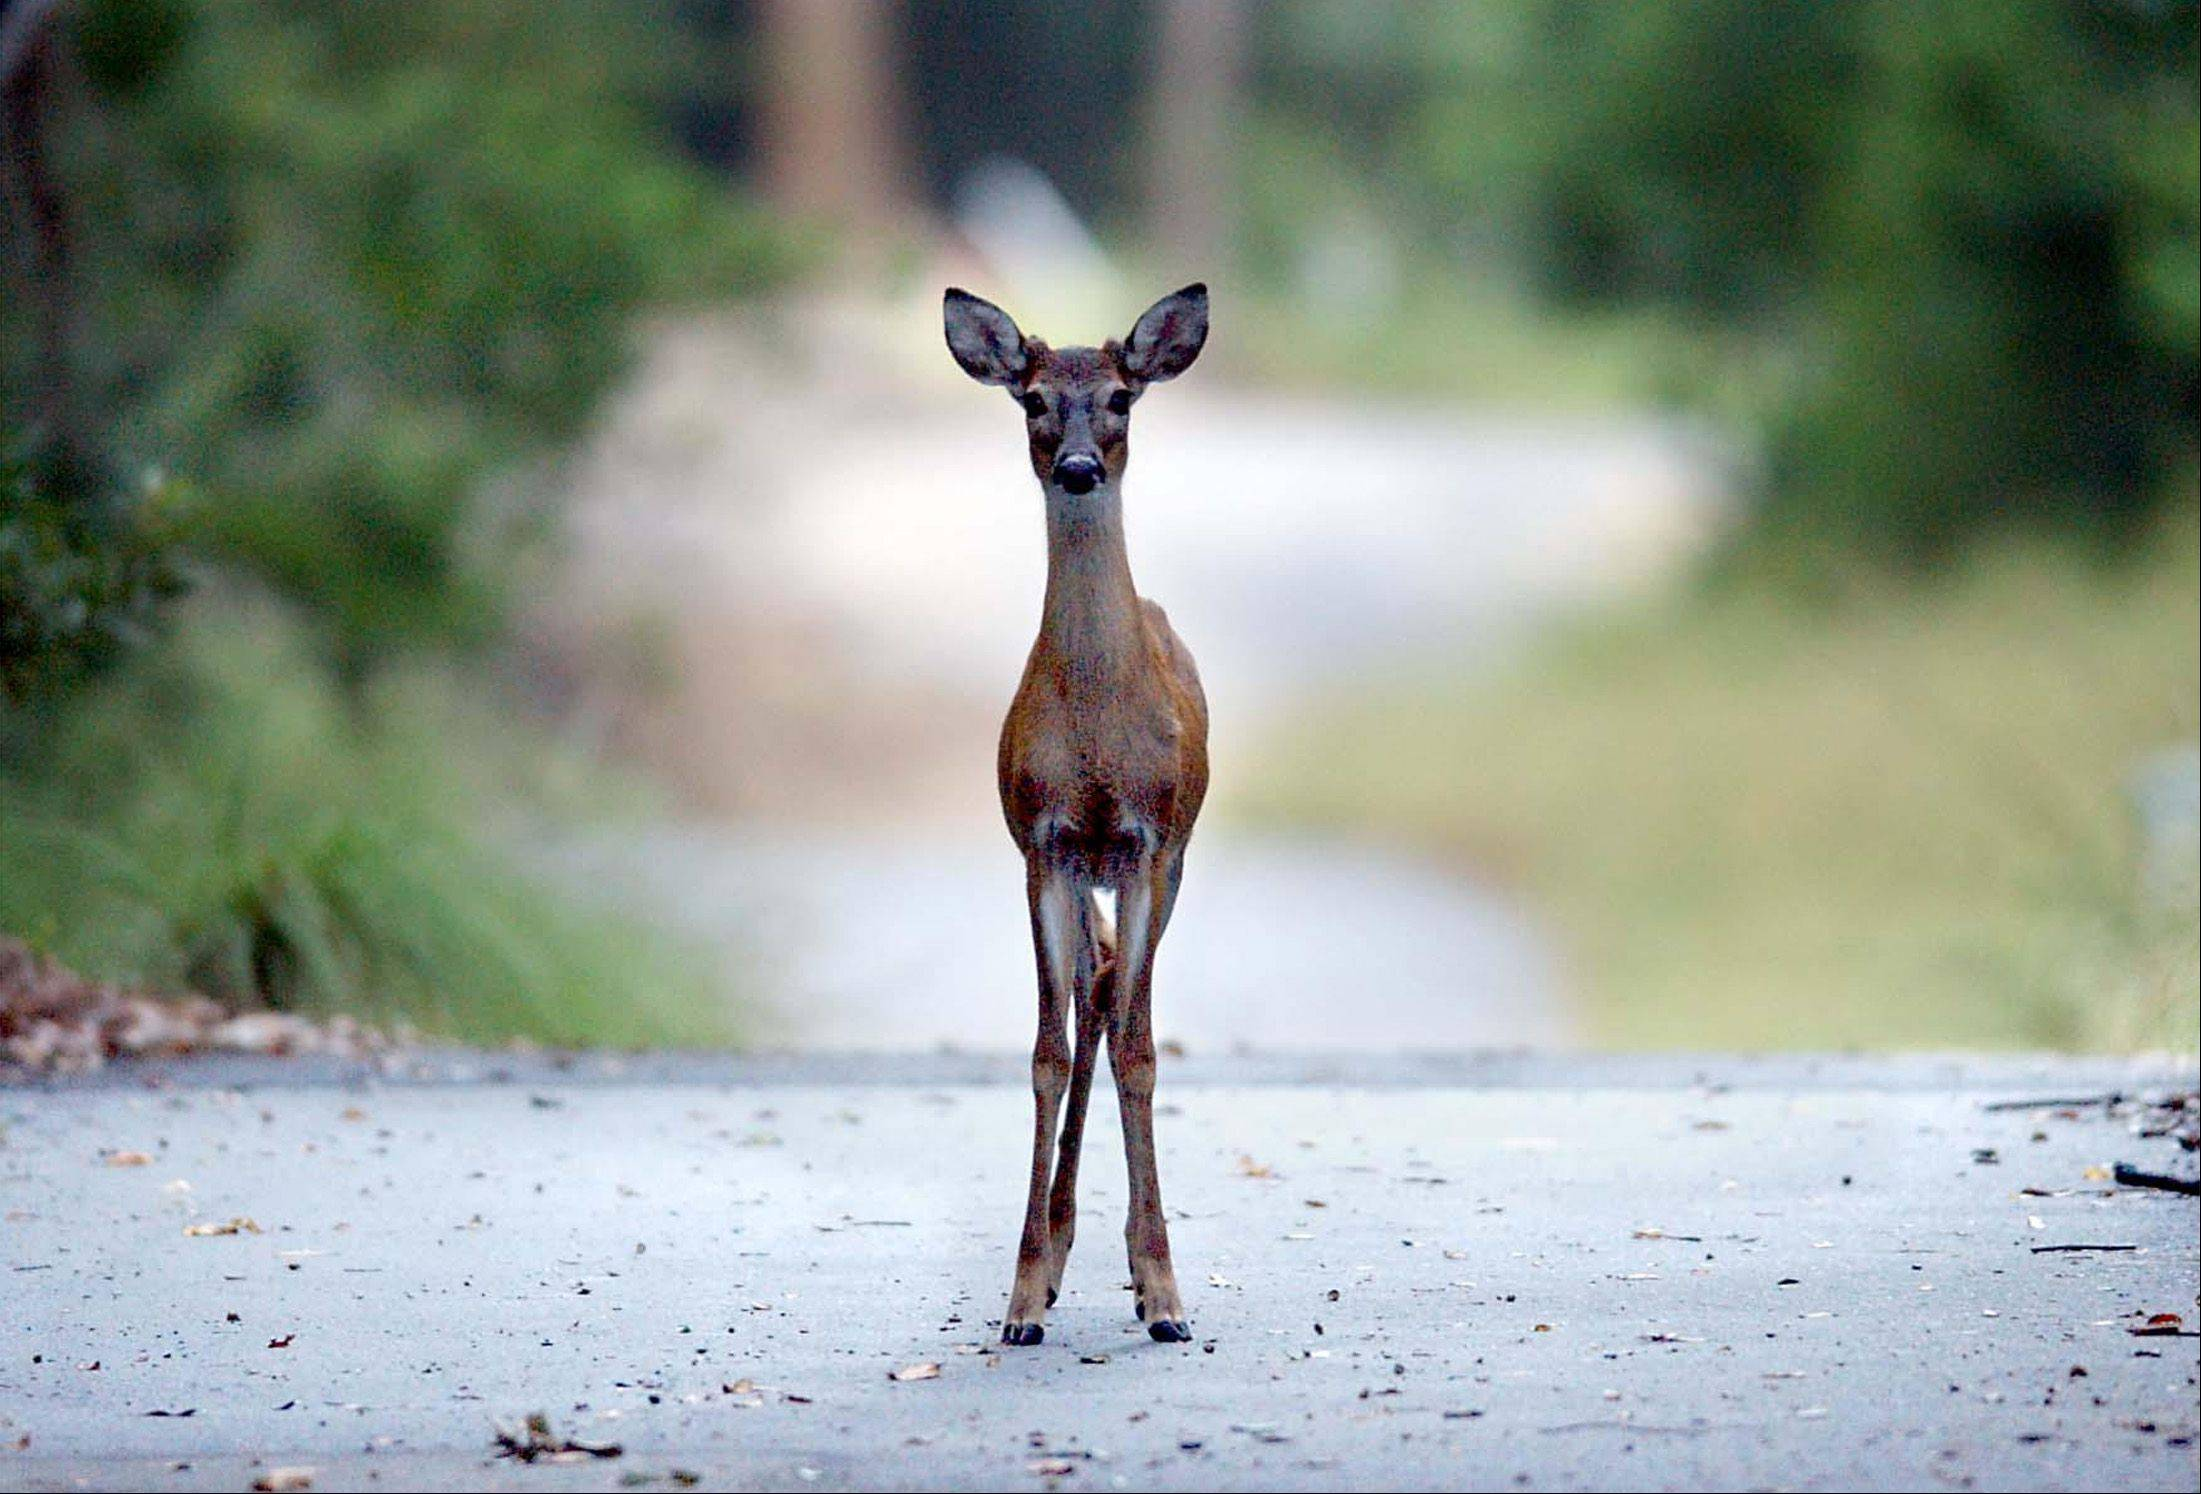 Illinois officials are reminding drivers to be alert for deer on the roadways during what they say is the one of the most active periods of the year for wildlife.